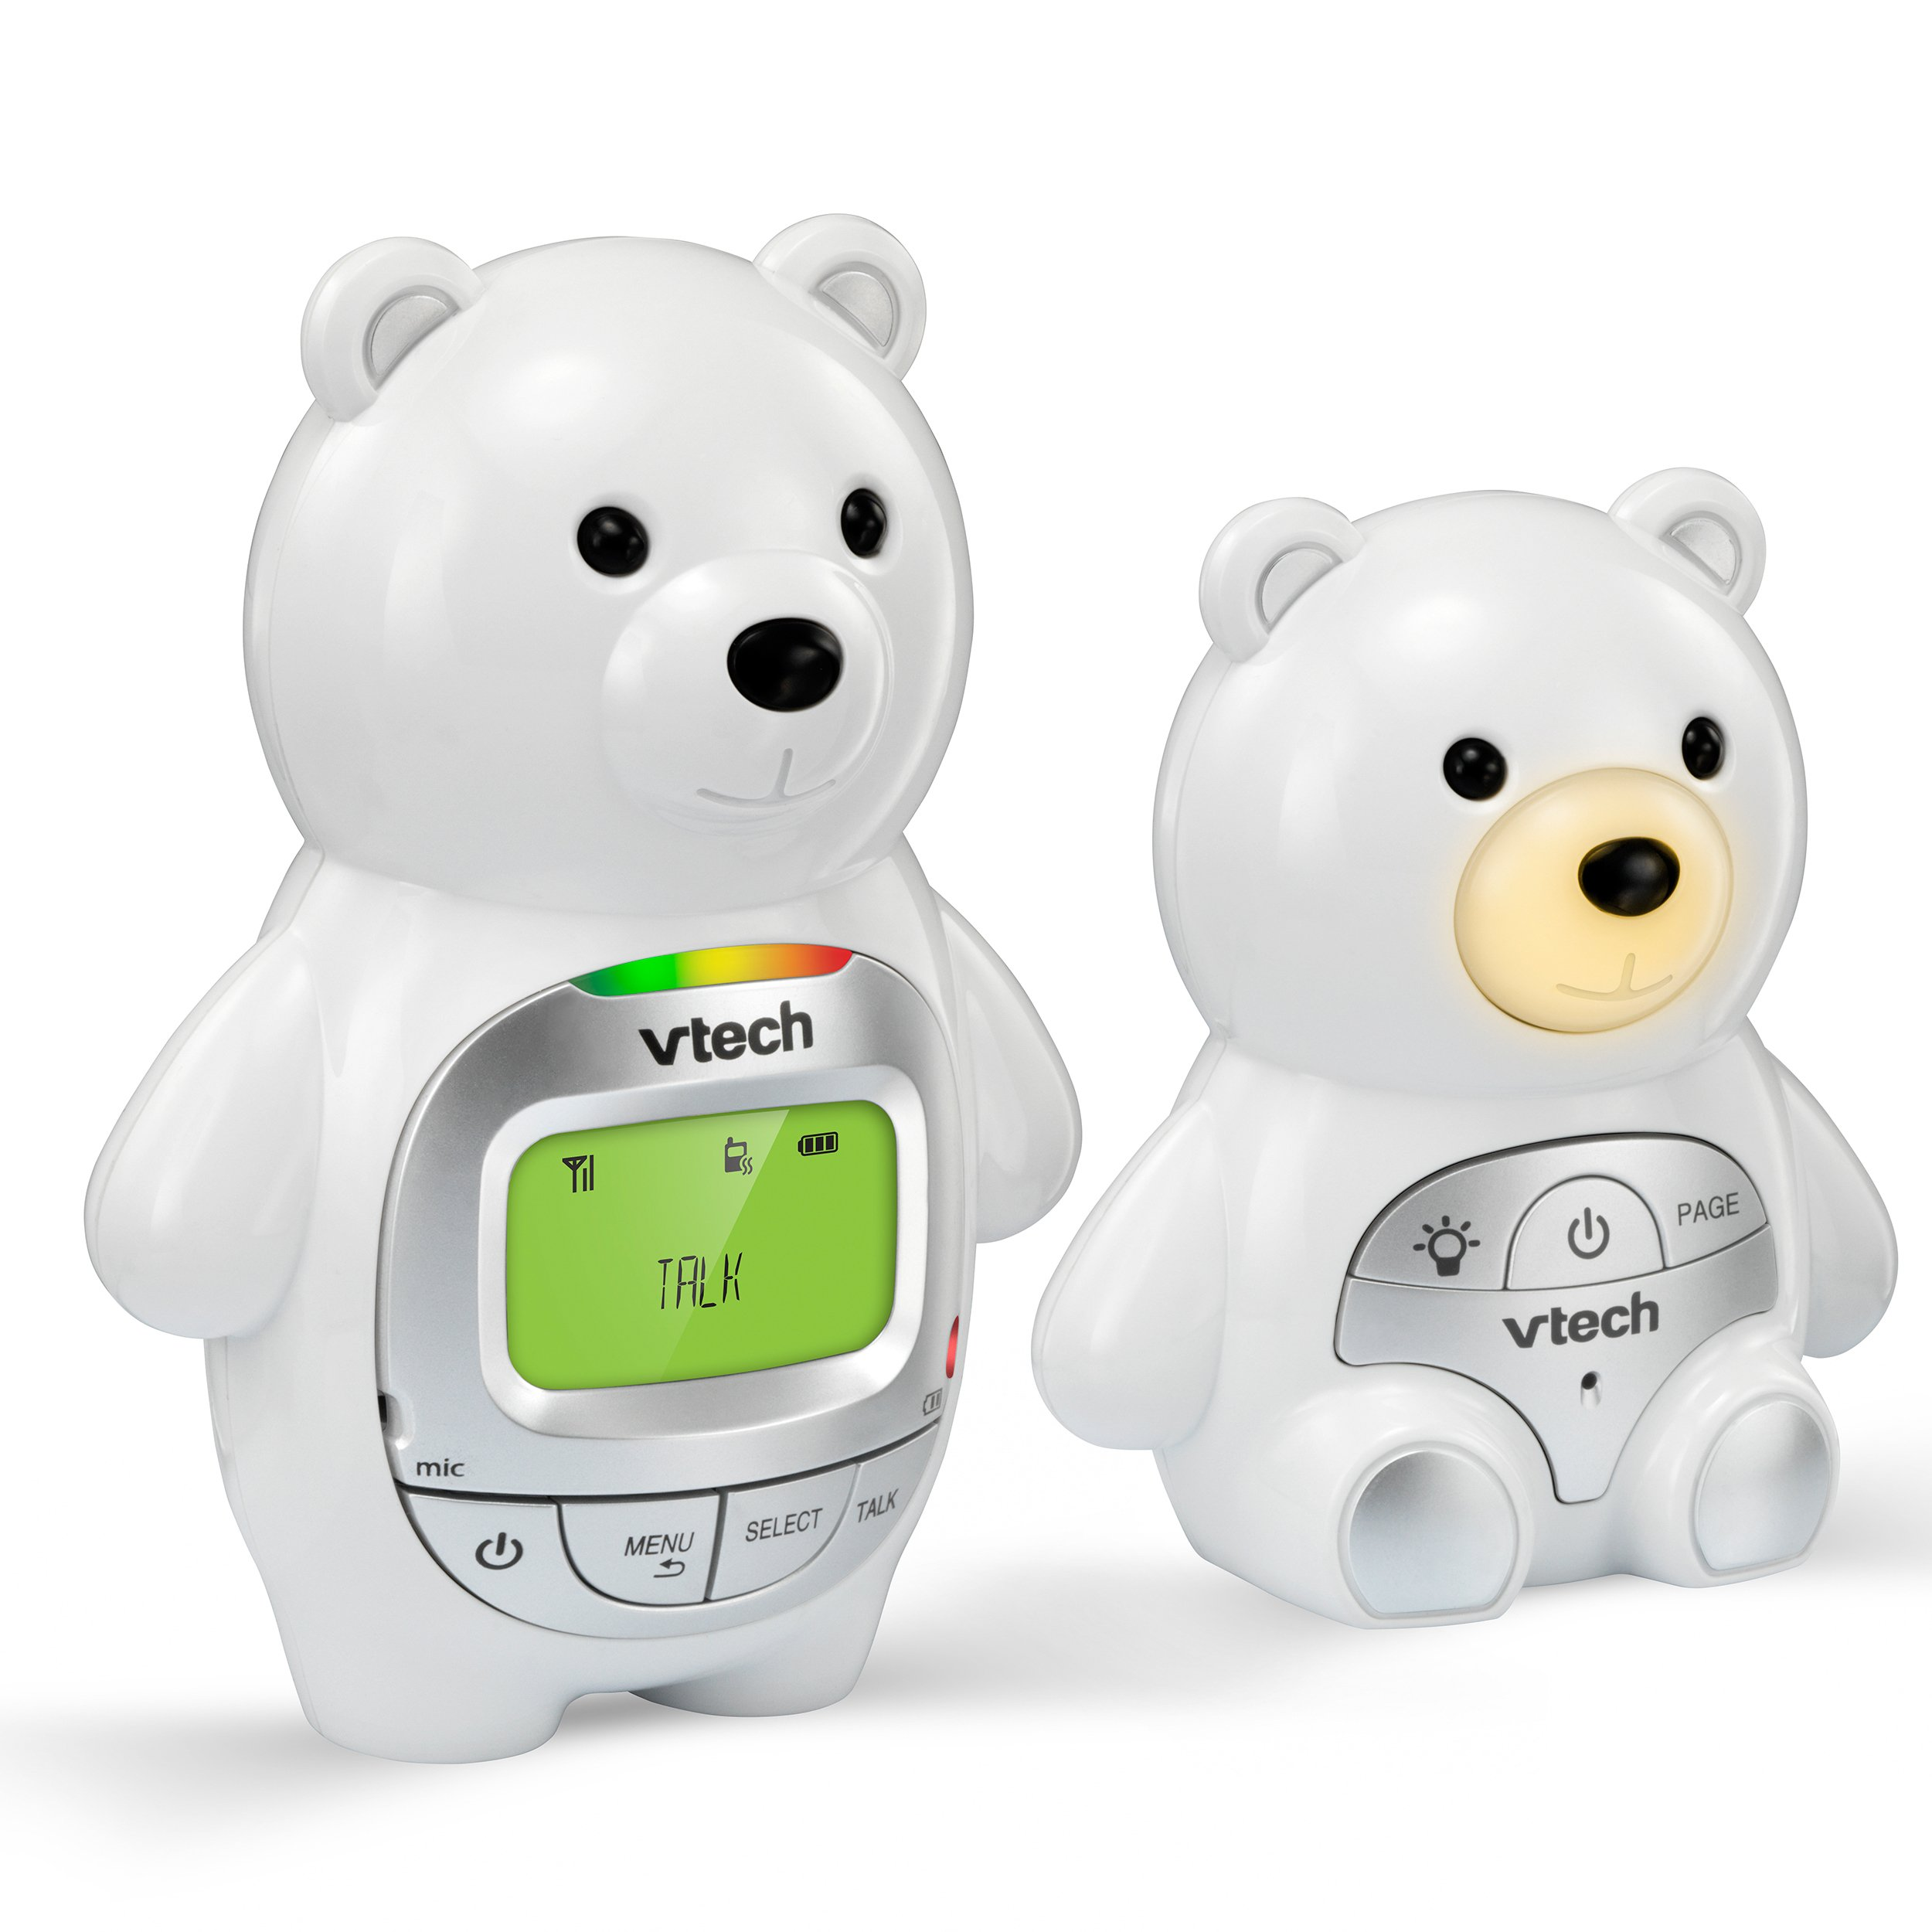 VTech DM226 Teddy Bear Audio Baby Monitor with up to 1,000 ft of Range, Vibrating Sound-Alert, Talk-Back Intercom, Digitized Transmission & Night Light